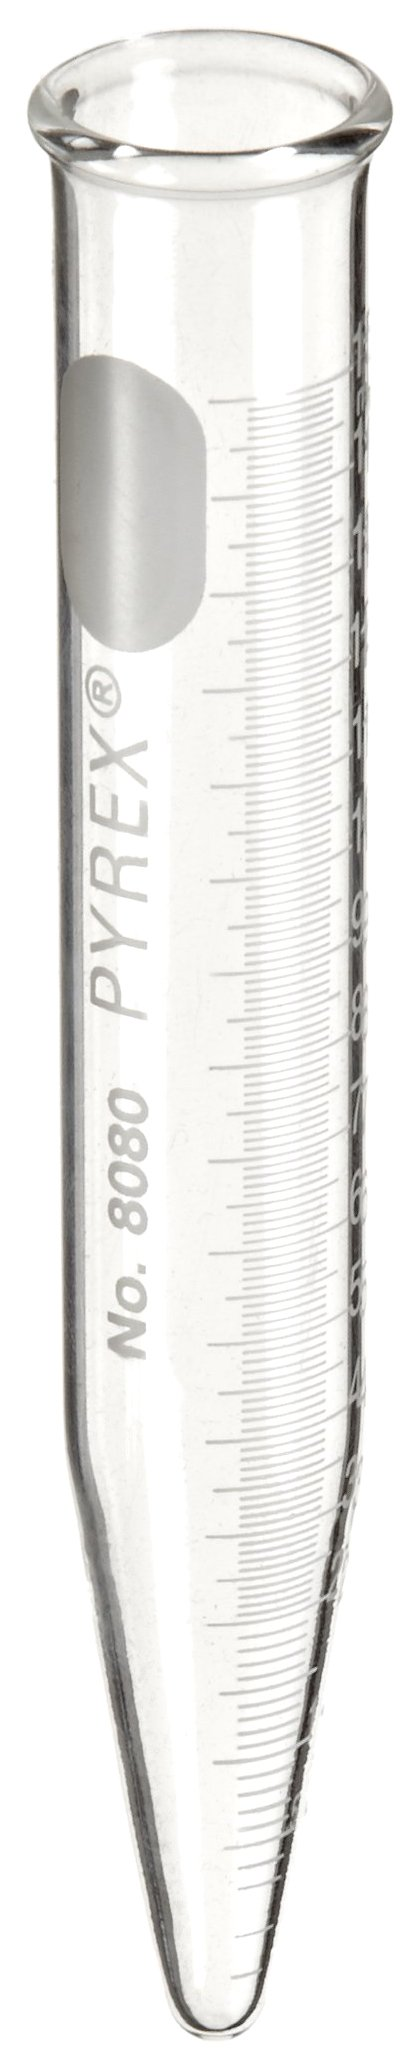 Corning Pyrex 8080-15 Glass Conical Cylindrical 15mL Centrifuge Tube with White Graduations and Beaded Rim (Pack of 12) by Corning